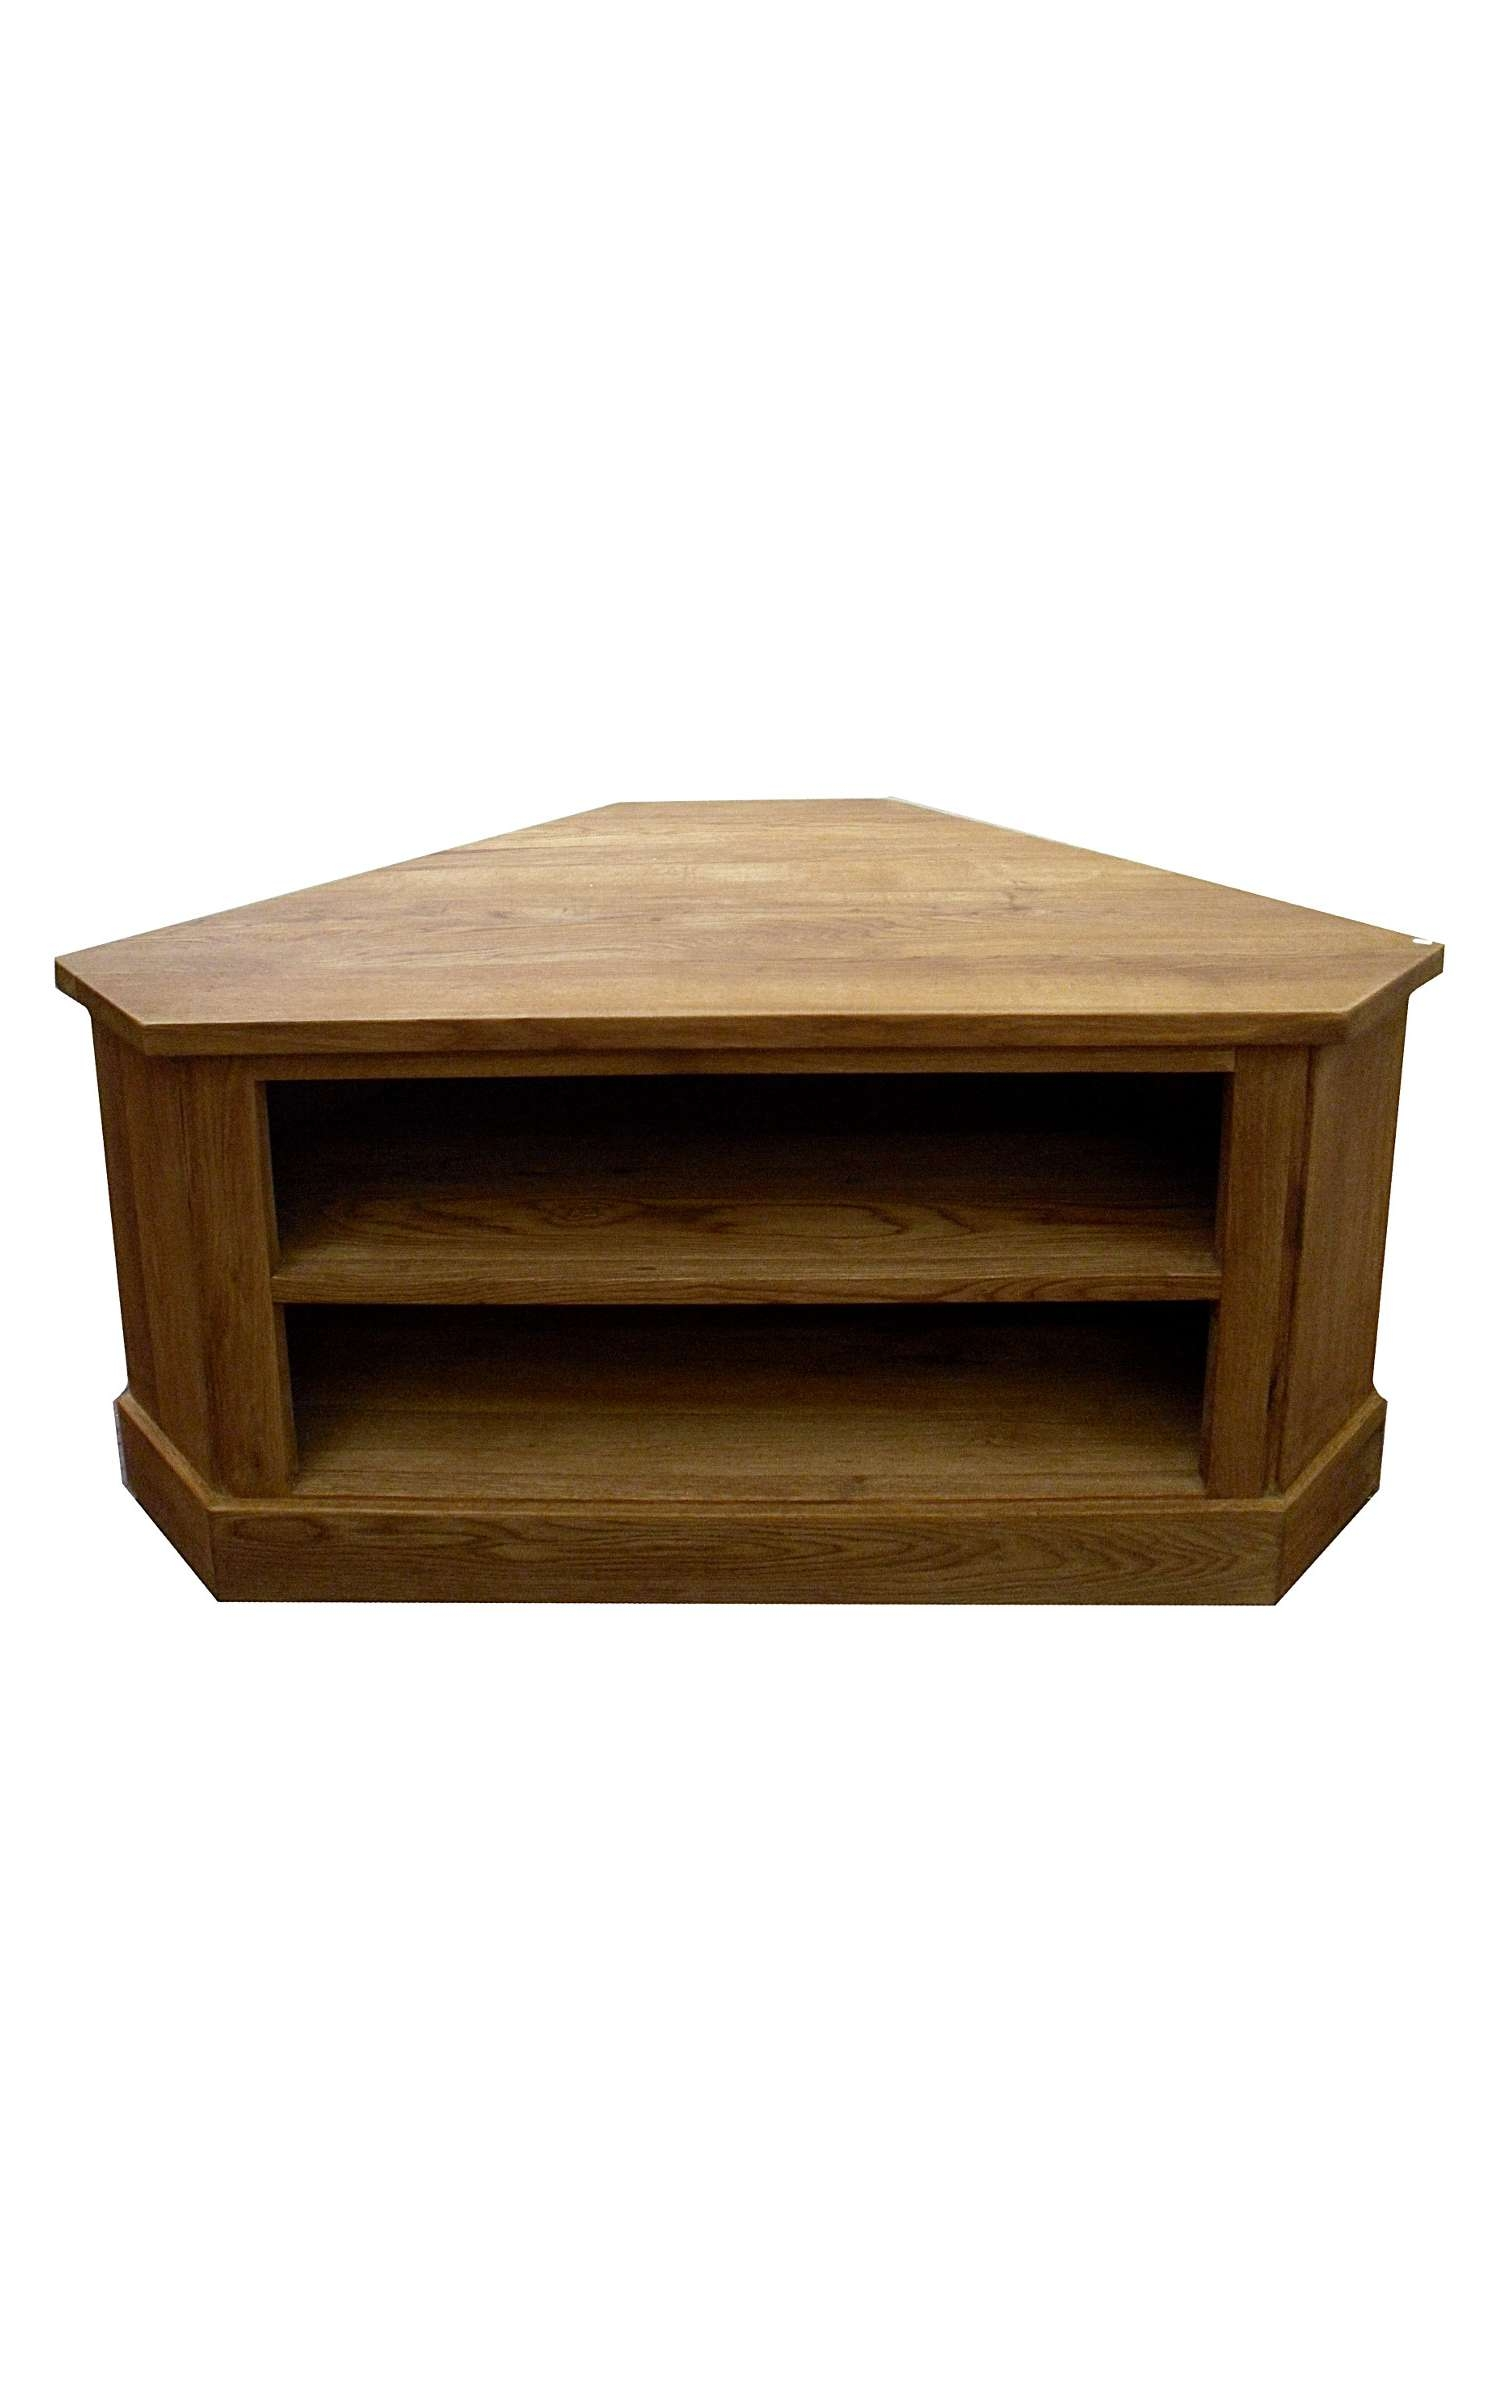 Small Wooden Corner Tv Stand Console Cabinet With Fireplace And For Wooden Corner Tv Cabinets (View 11 of 20)